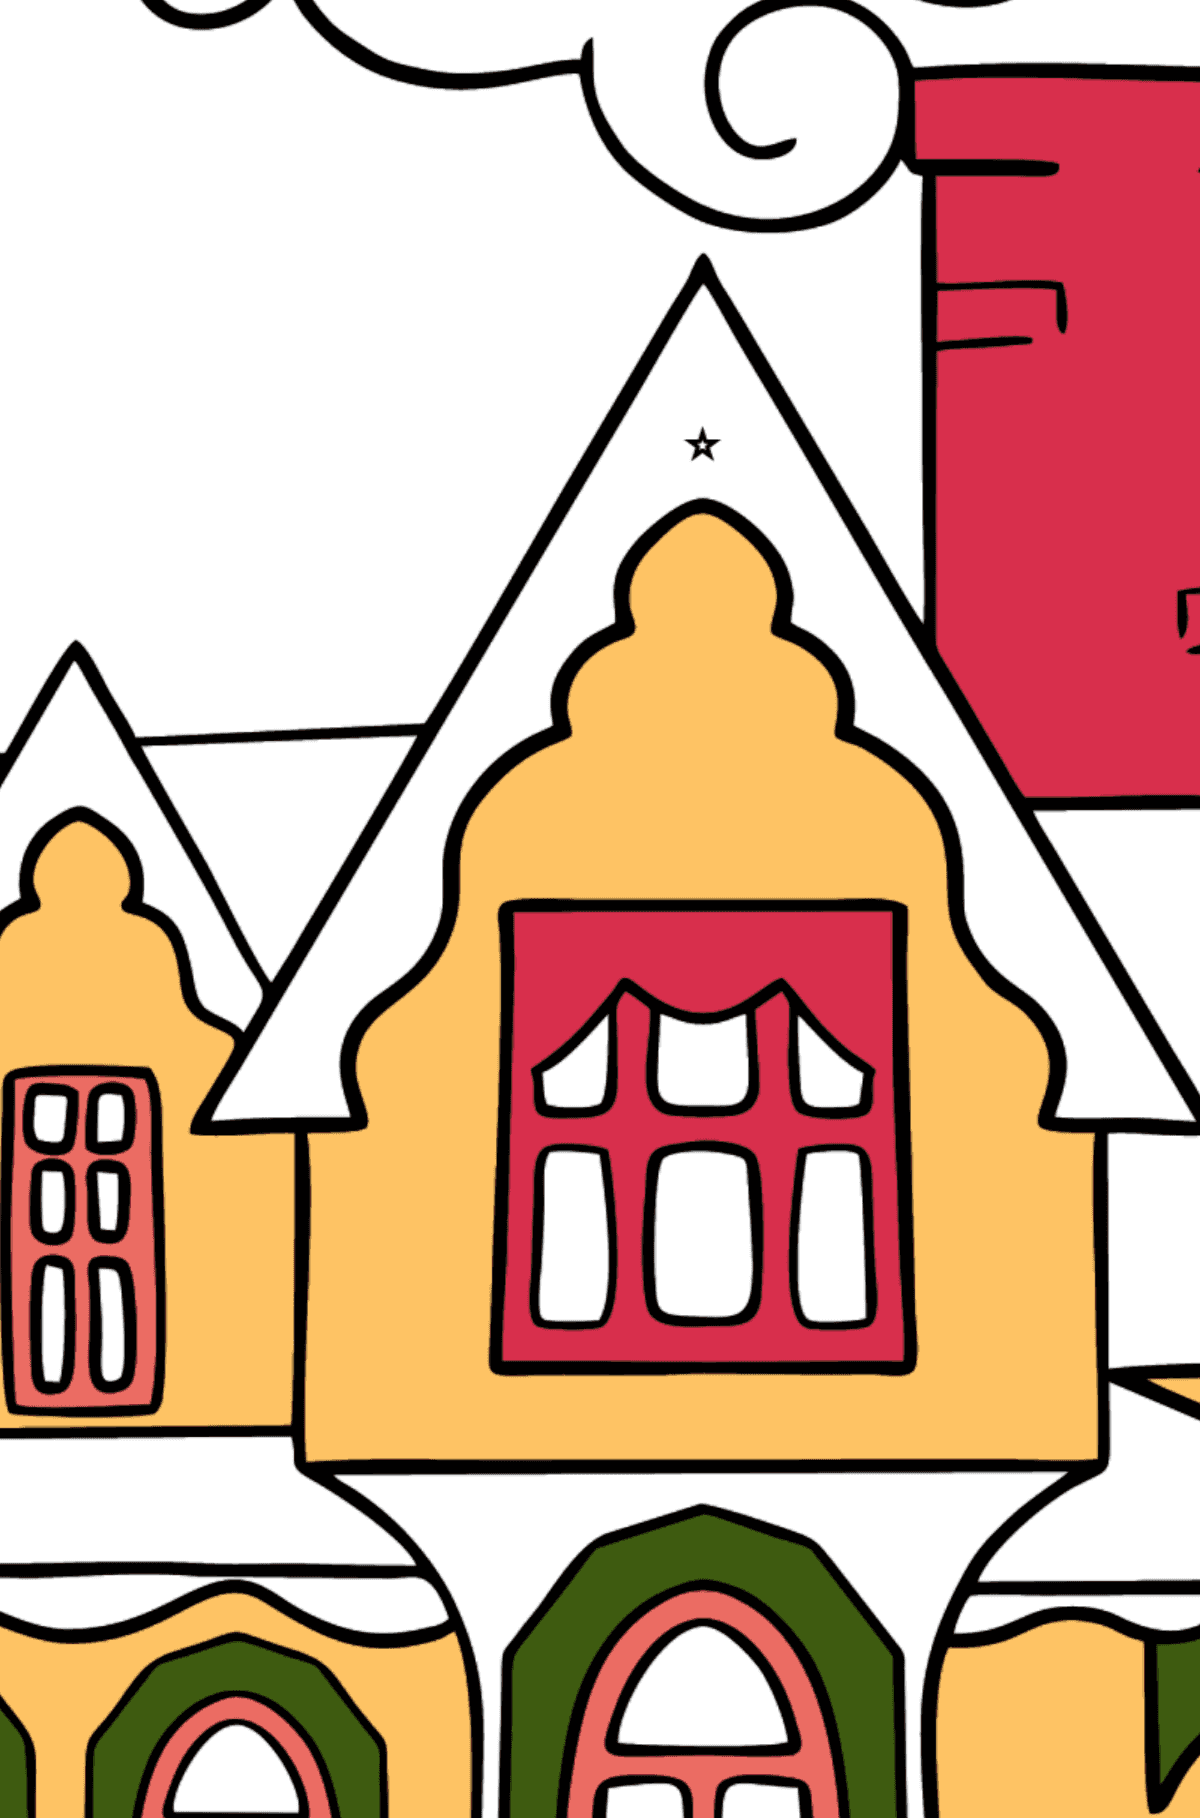 Simple Coloring Page - A Miraculous House - Coloring by Geometric Shapes for Kids